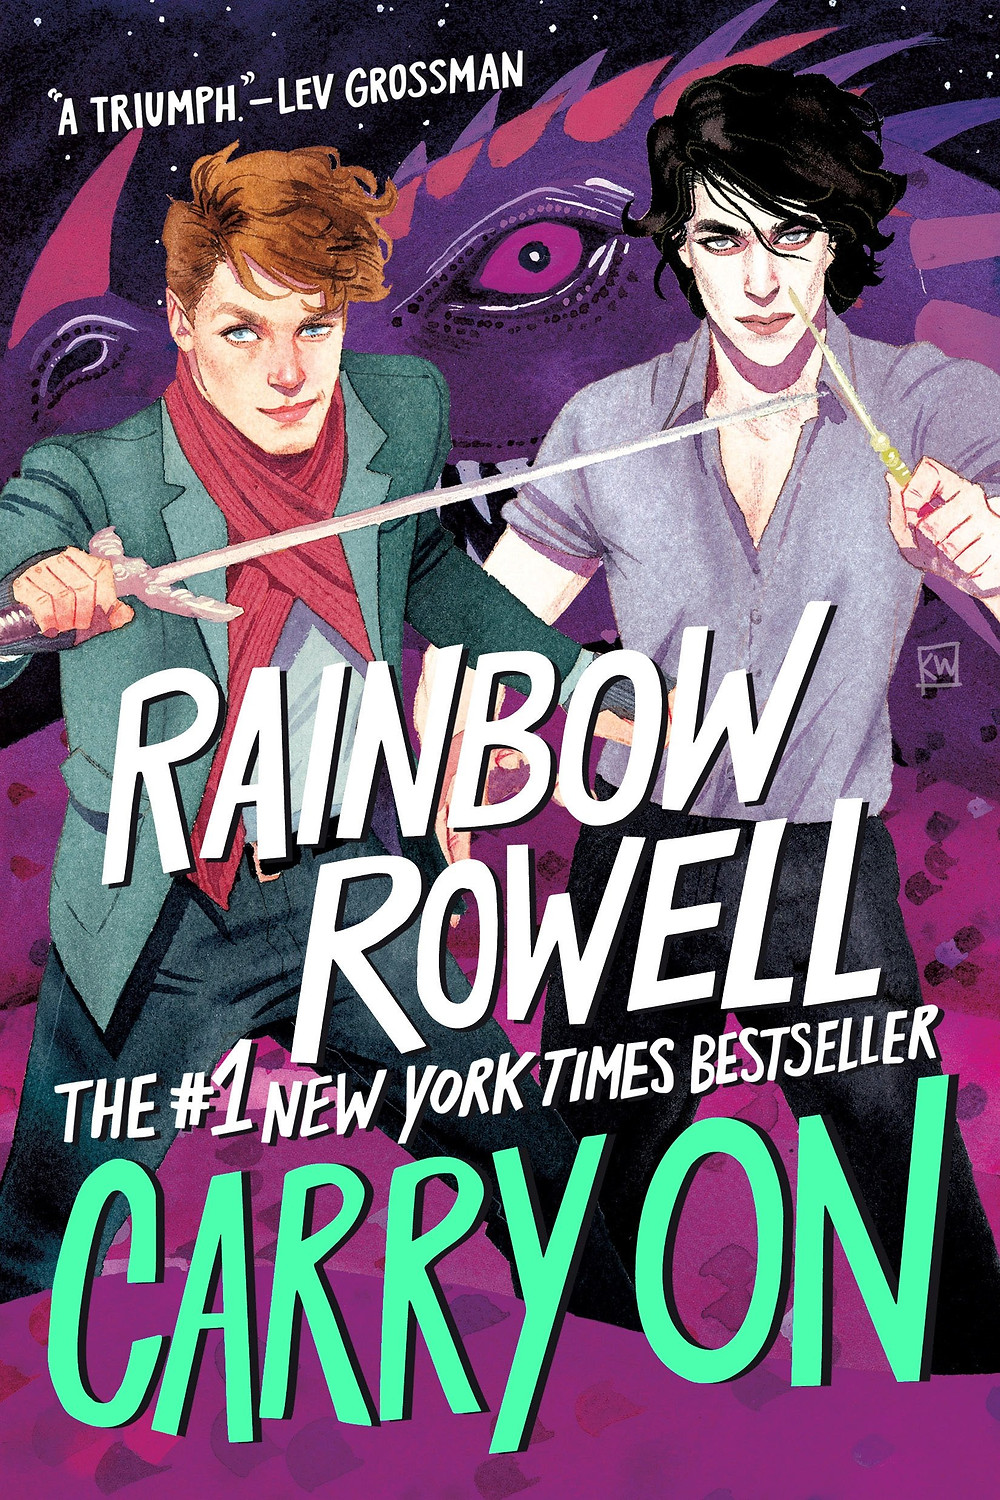 Carry On book cover featuring Simon and Baz holding wands in front of a dragon.